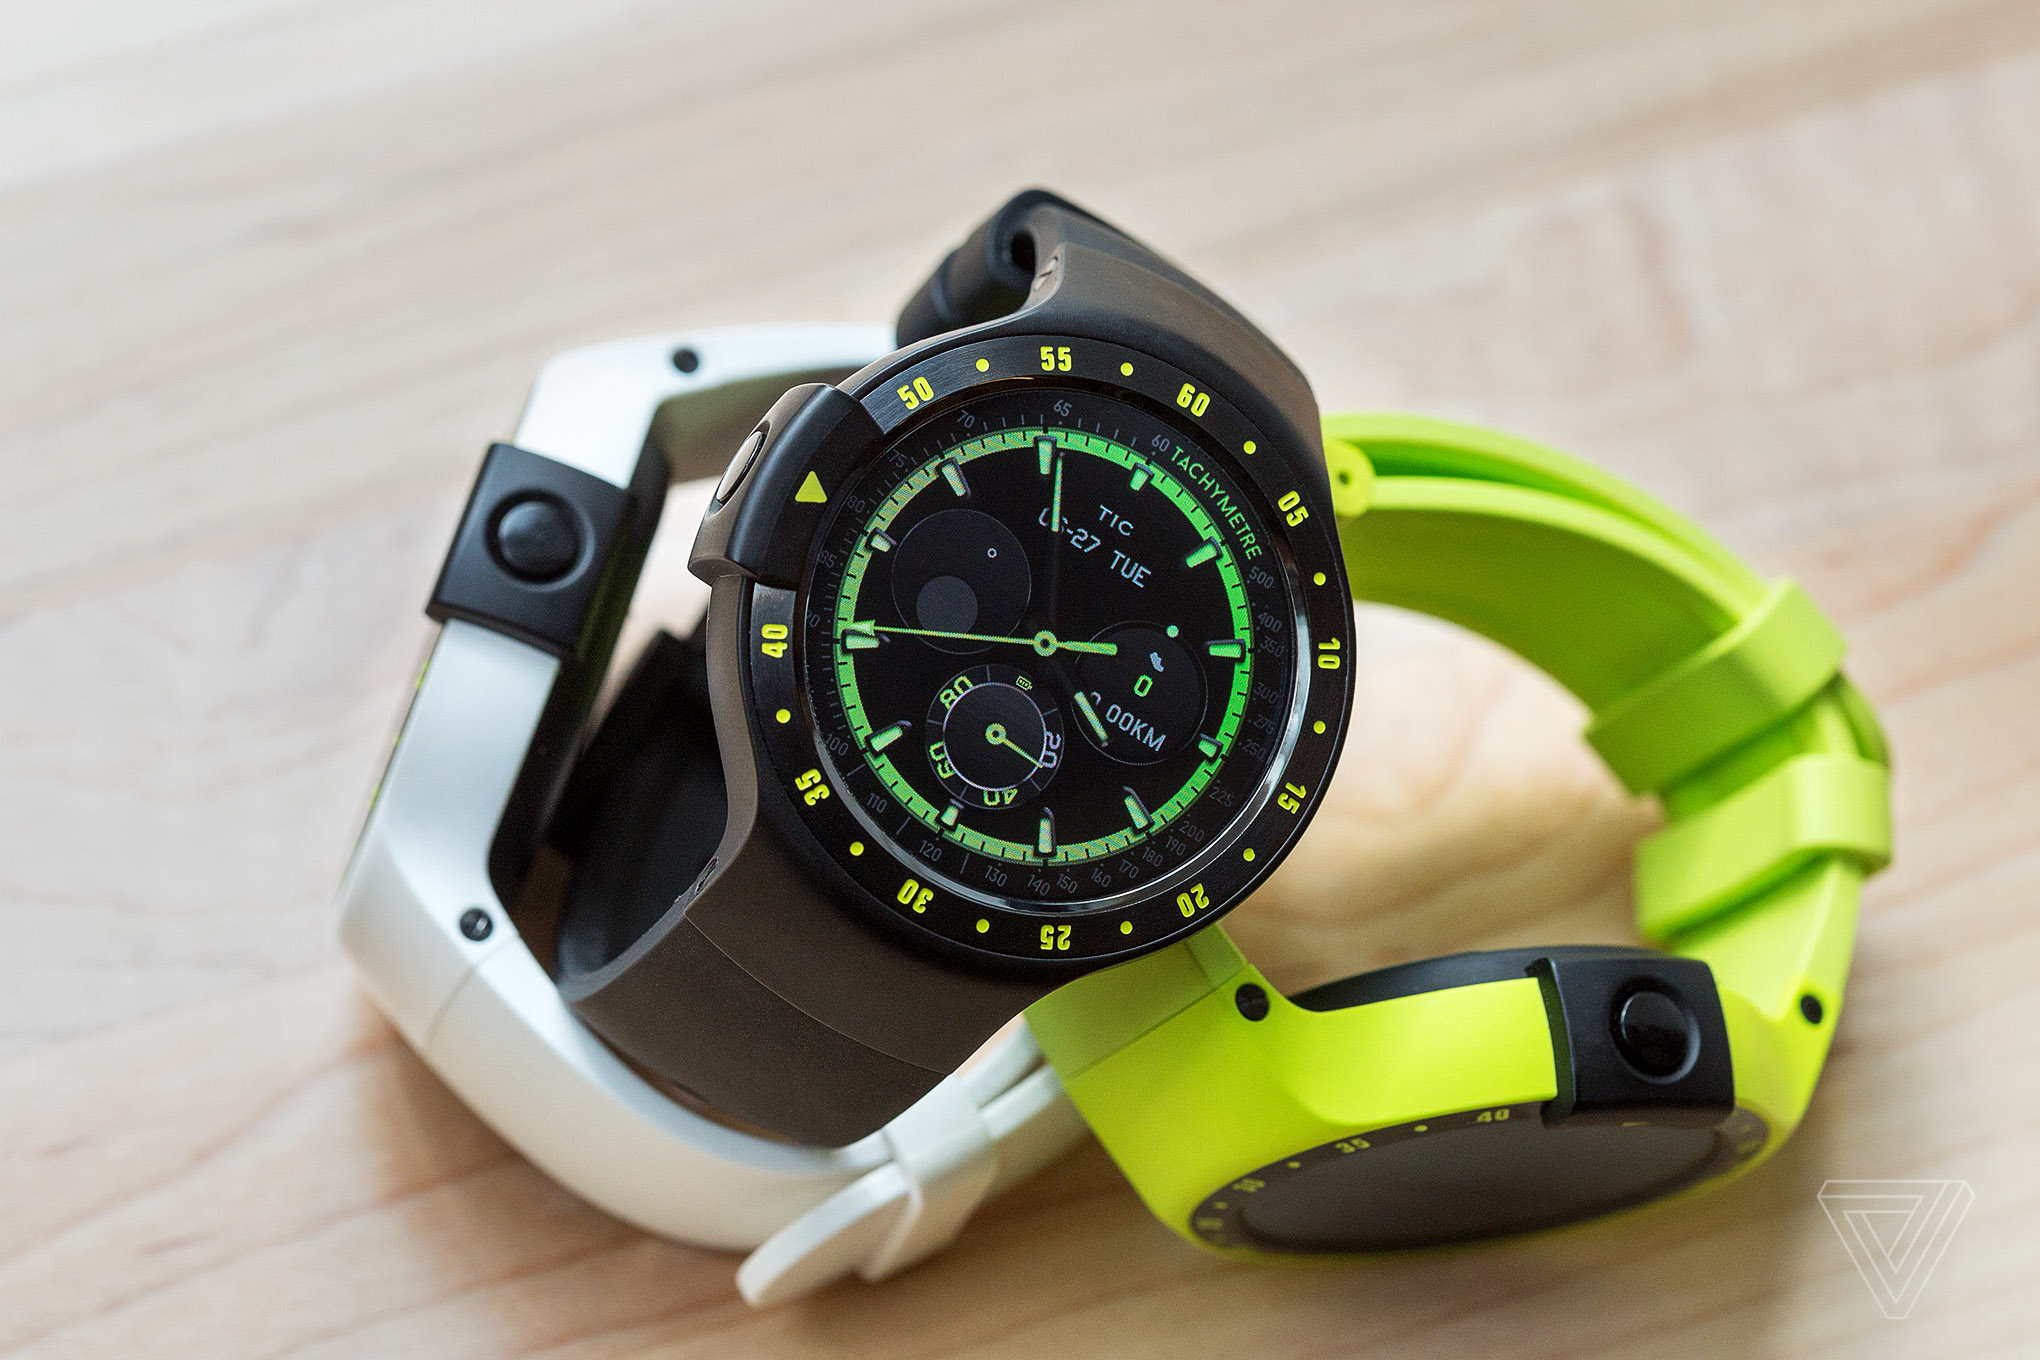 These New Android Wear Watches Start At Under 100 The Verge